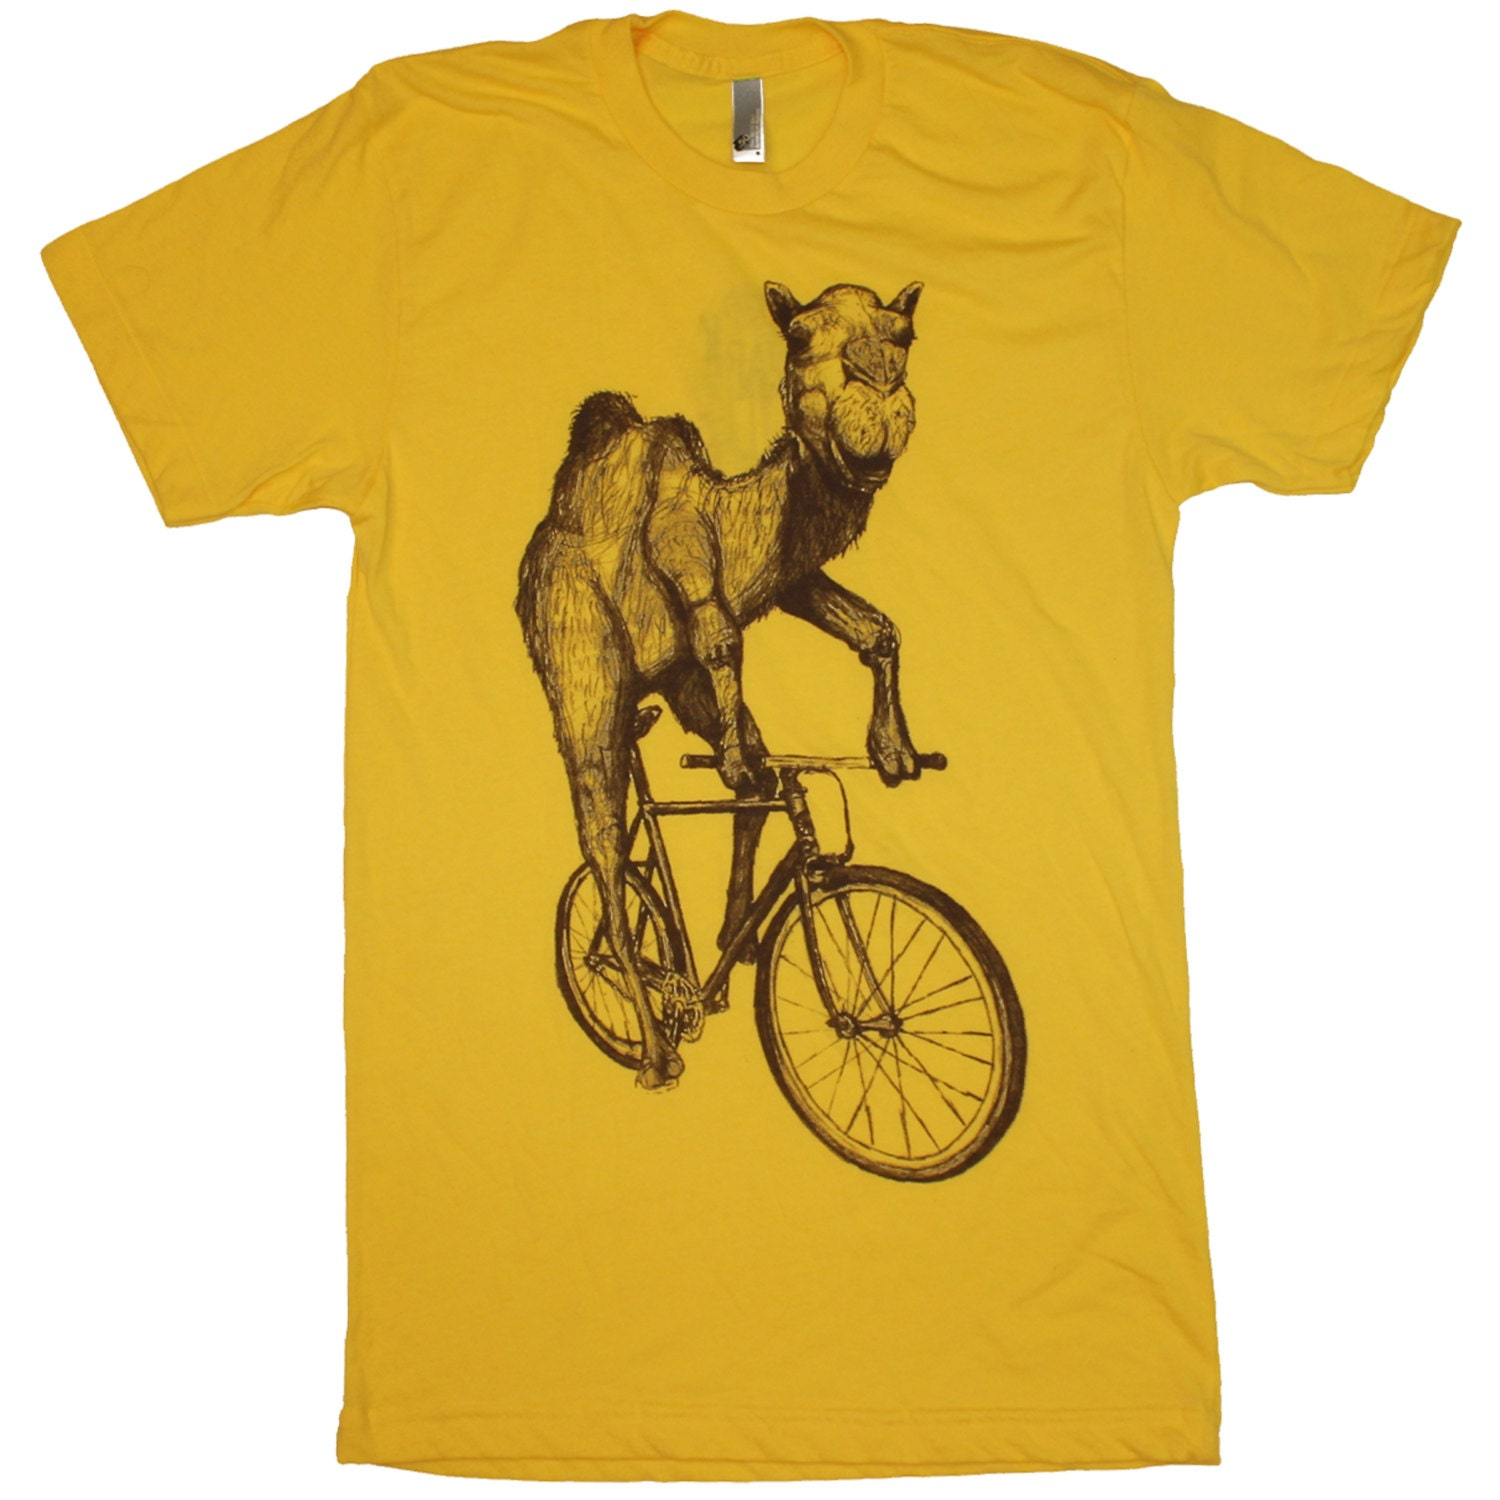 mens camel t shirt camel on a bike. Black Bedroom Furniture Sets. Home Design Ideas